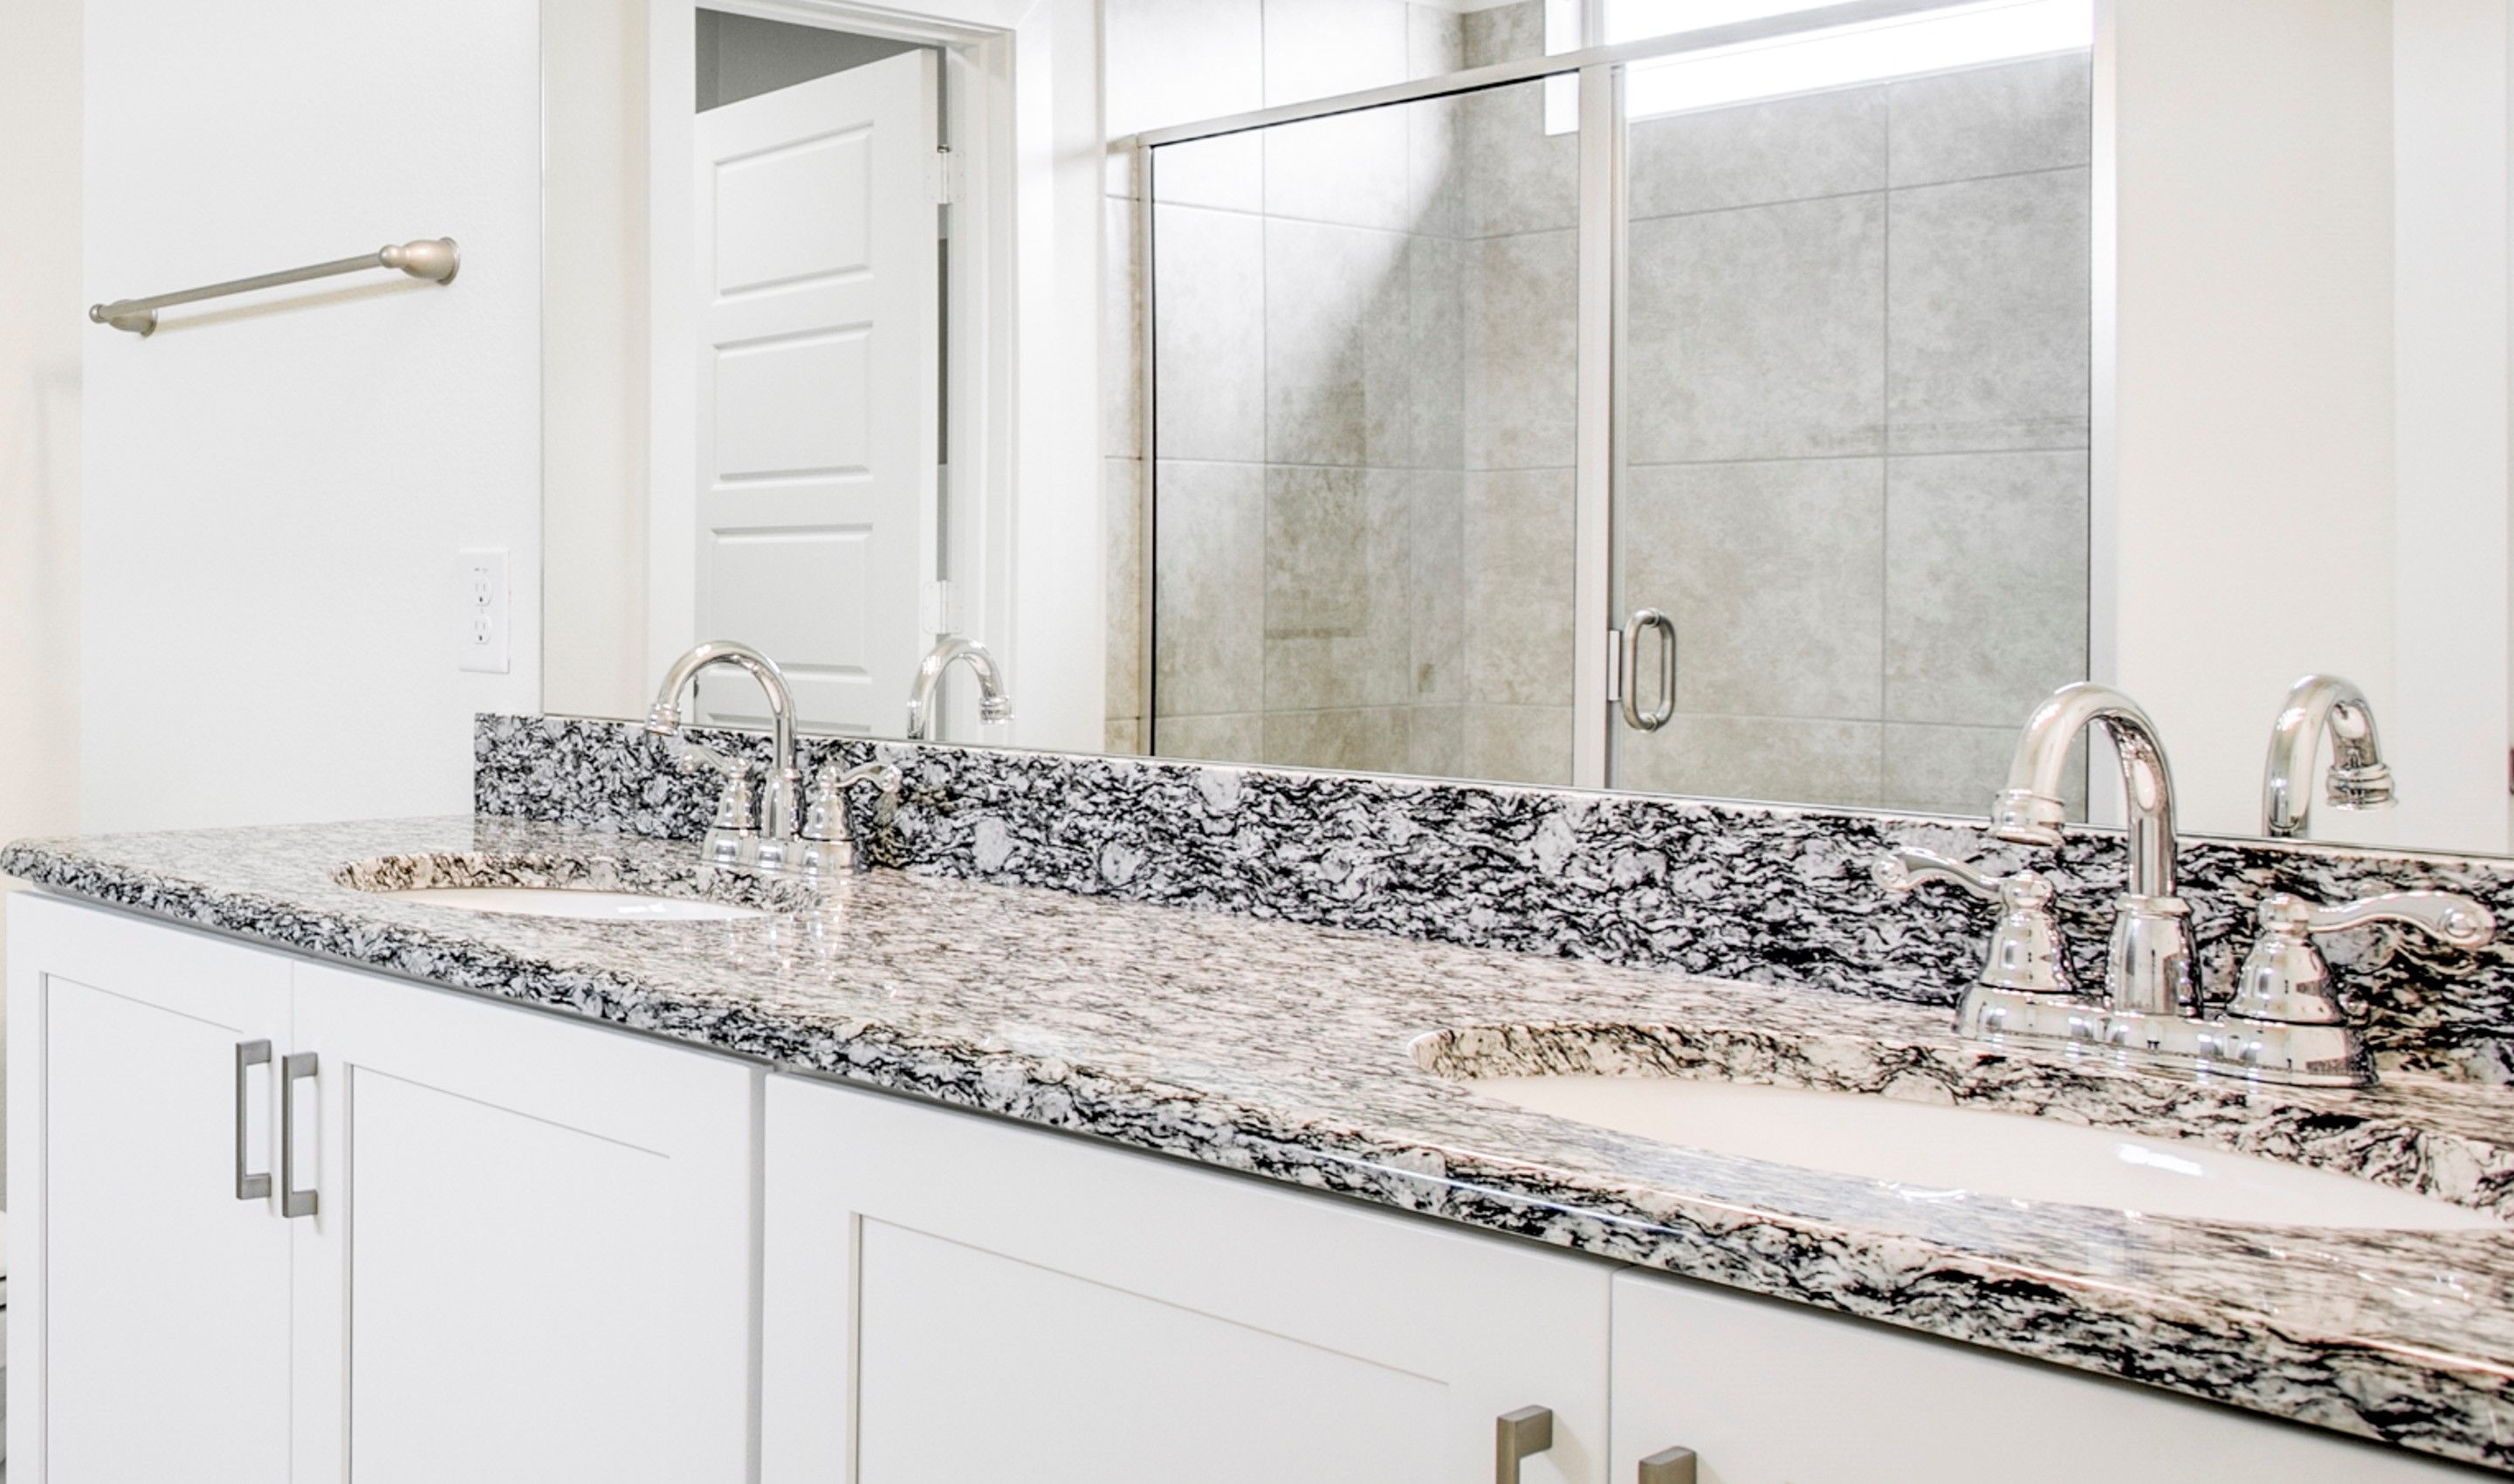 Bathroom featured in the Ashmont II By K. Hovnanian® Homes in Dallas, TX